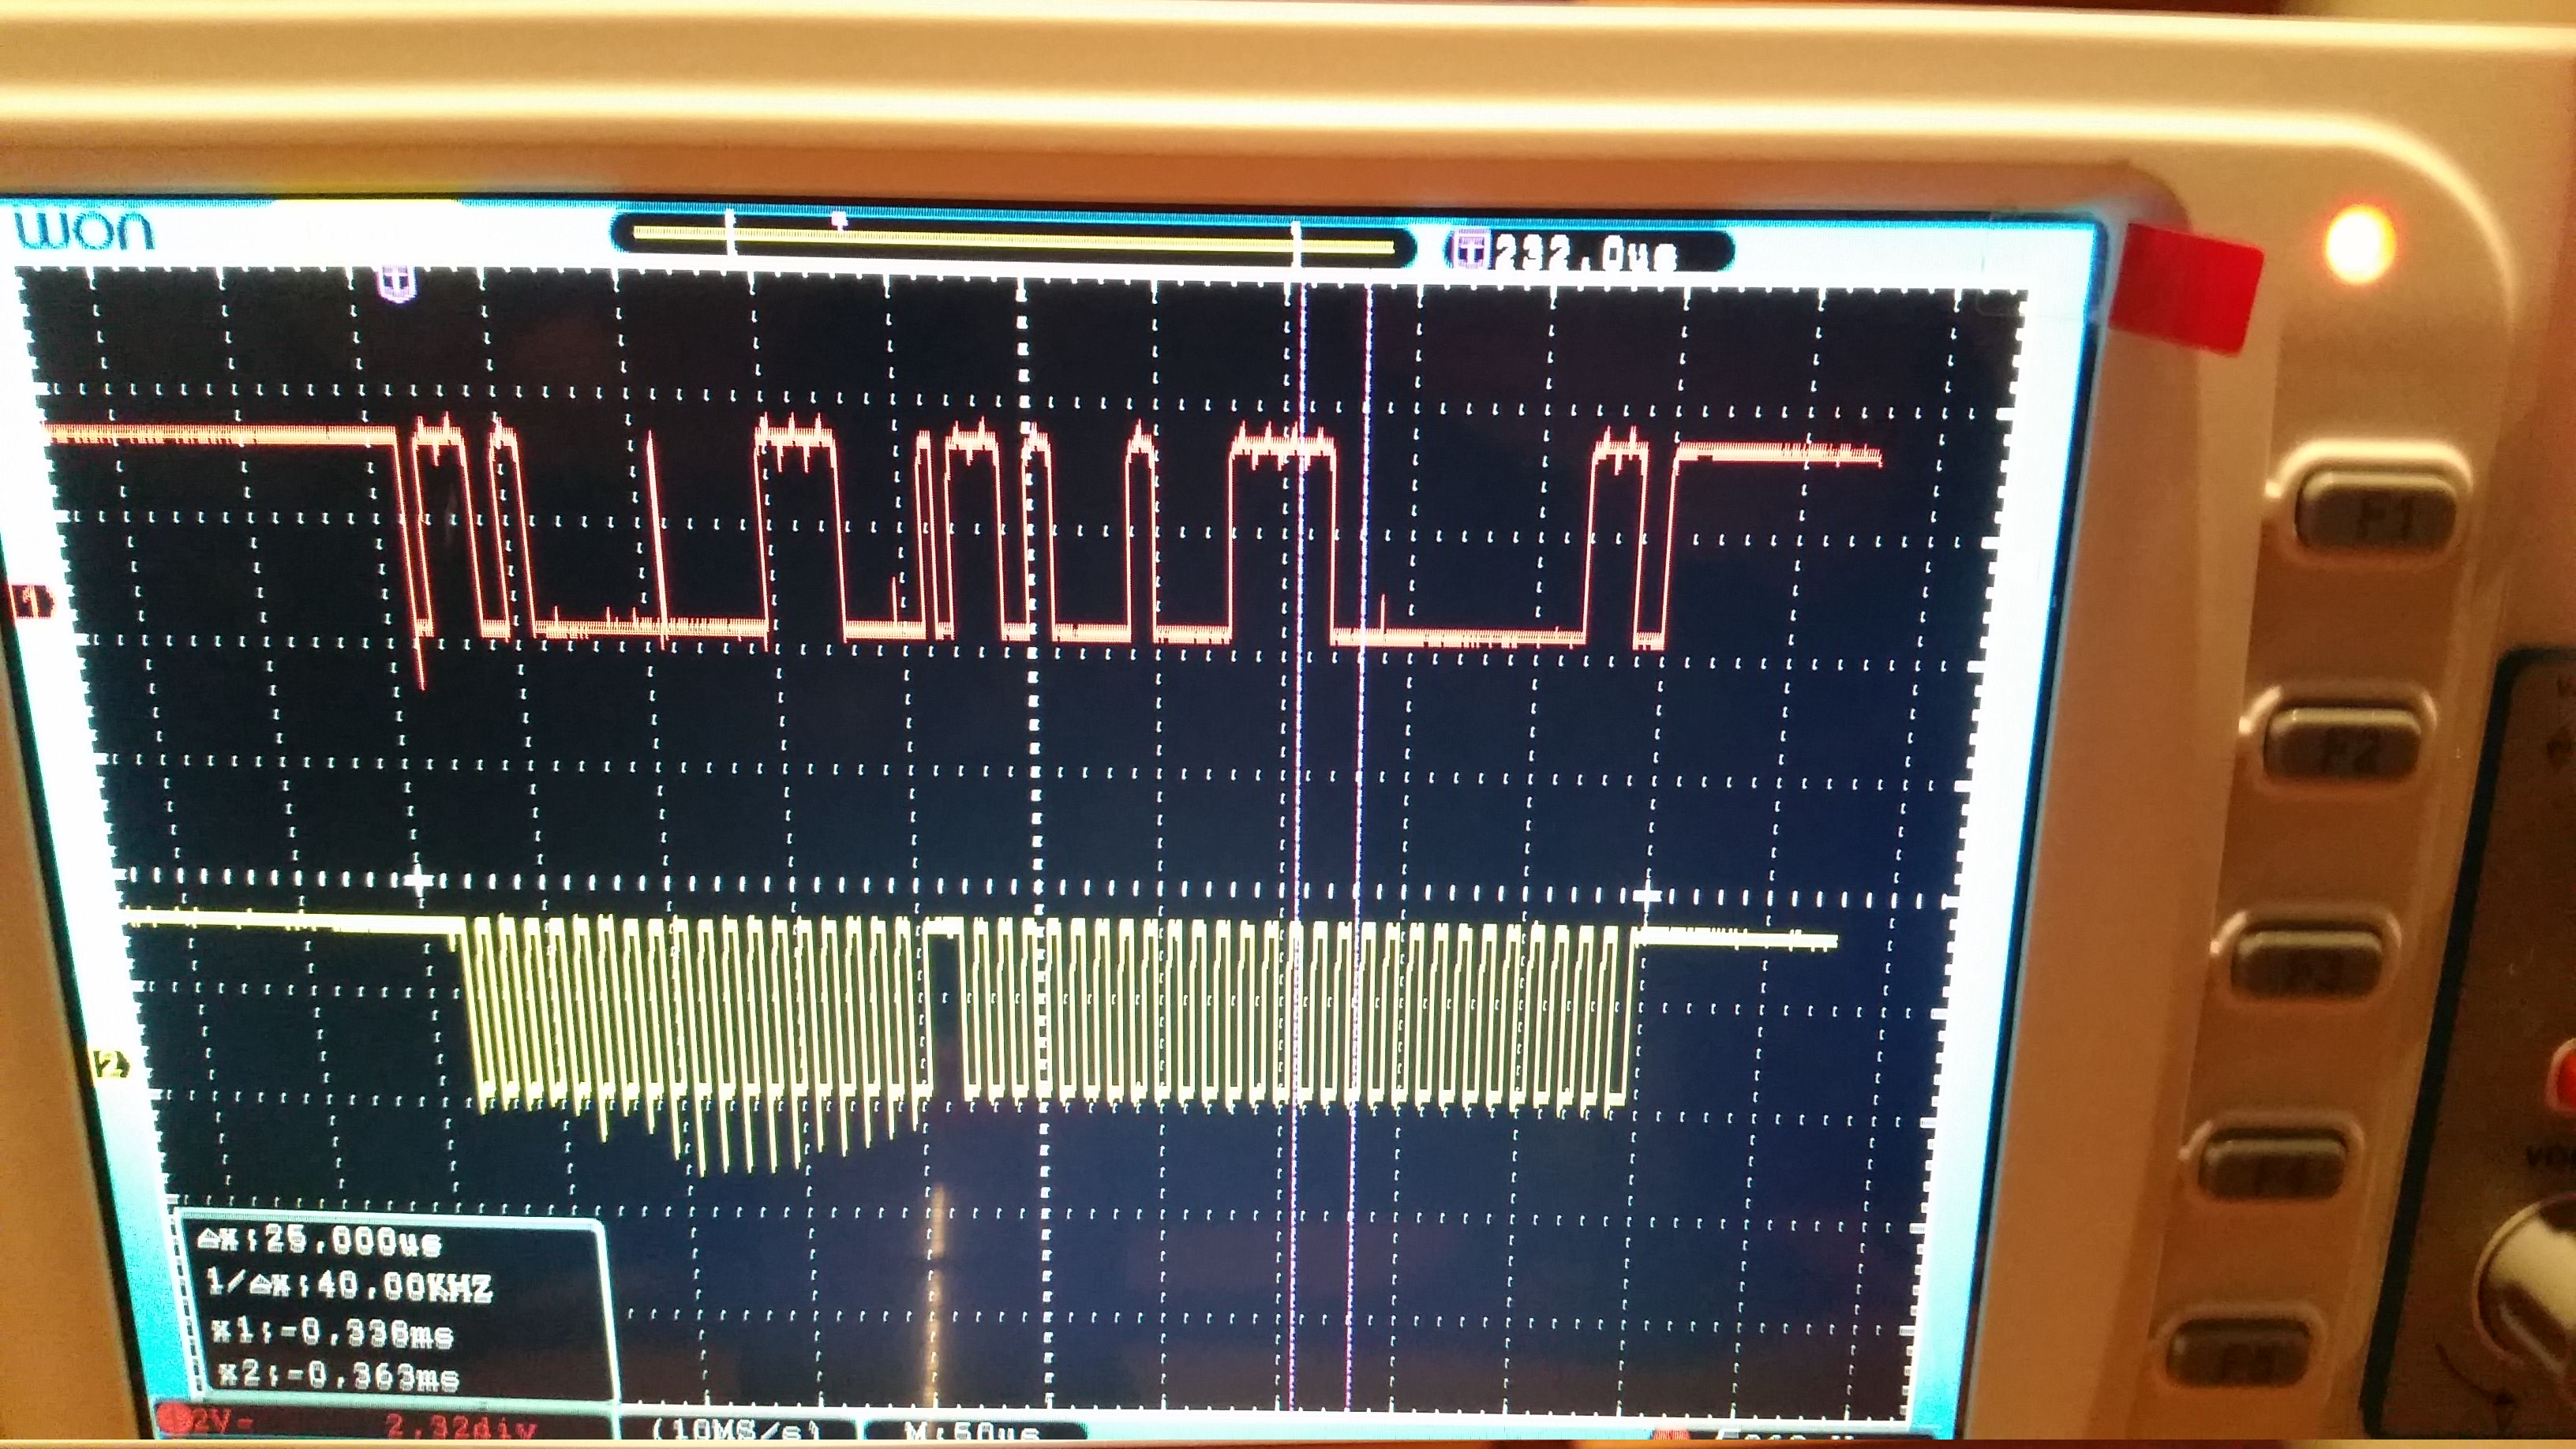 Is there are bug with the I2C for the STM32F407 Discovery board